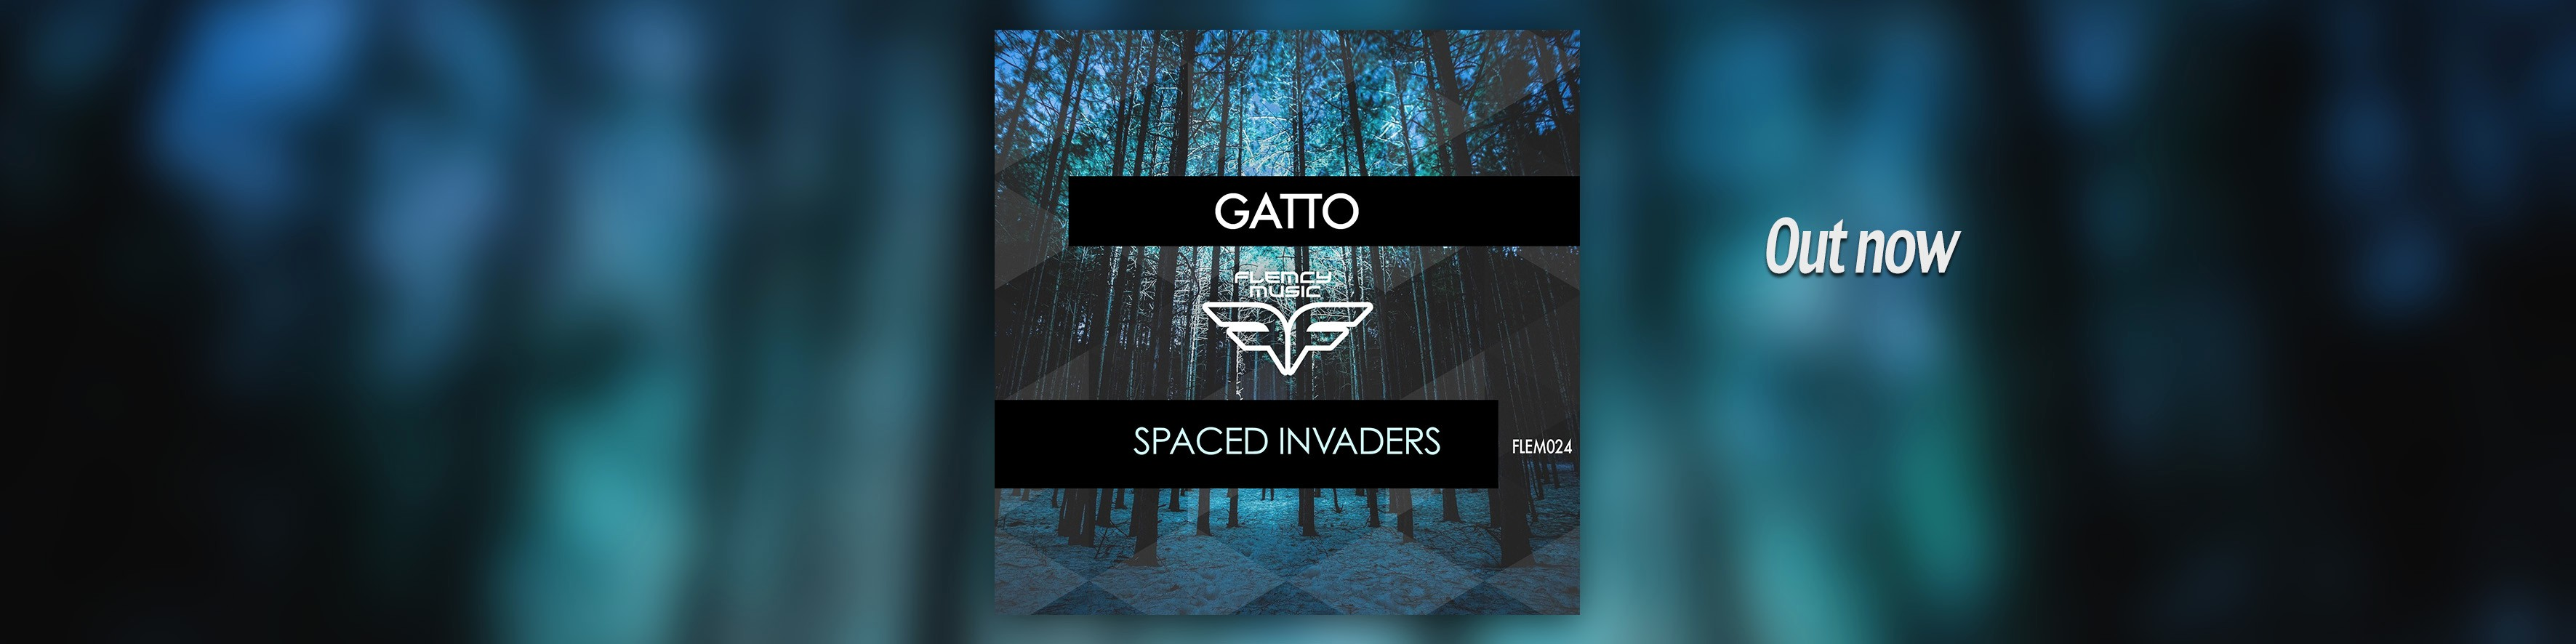 Flemcy slider banner Gatto – Spaced Invaders slider Out Now